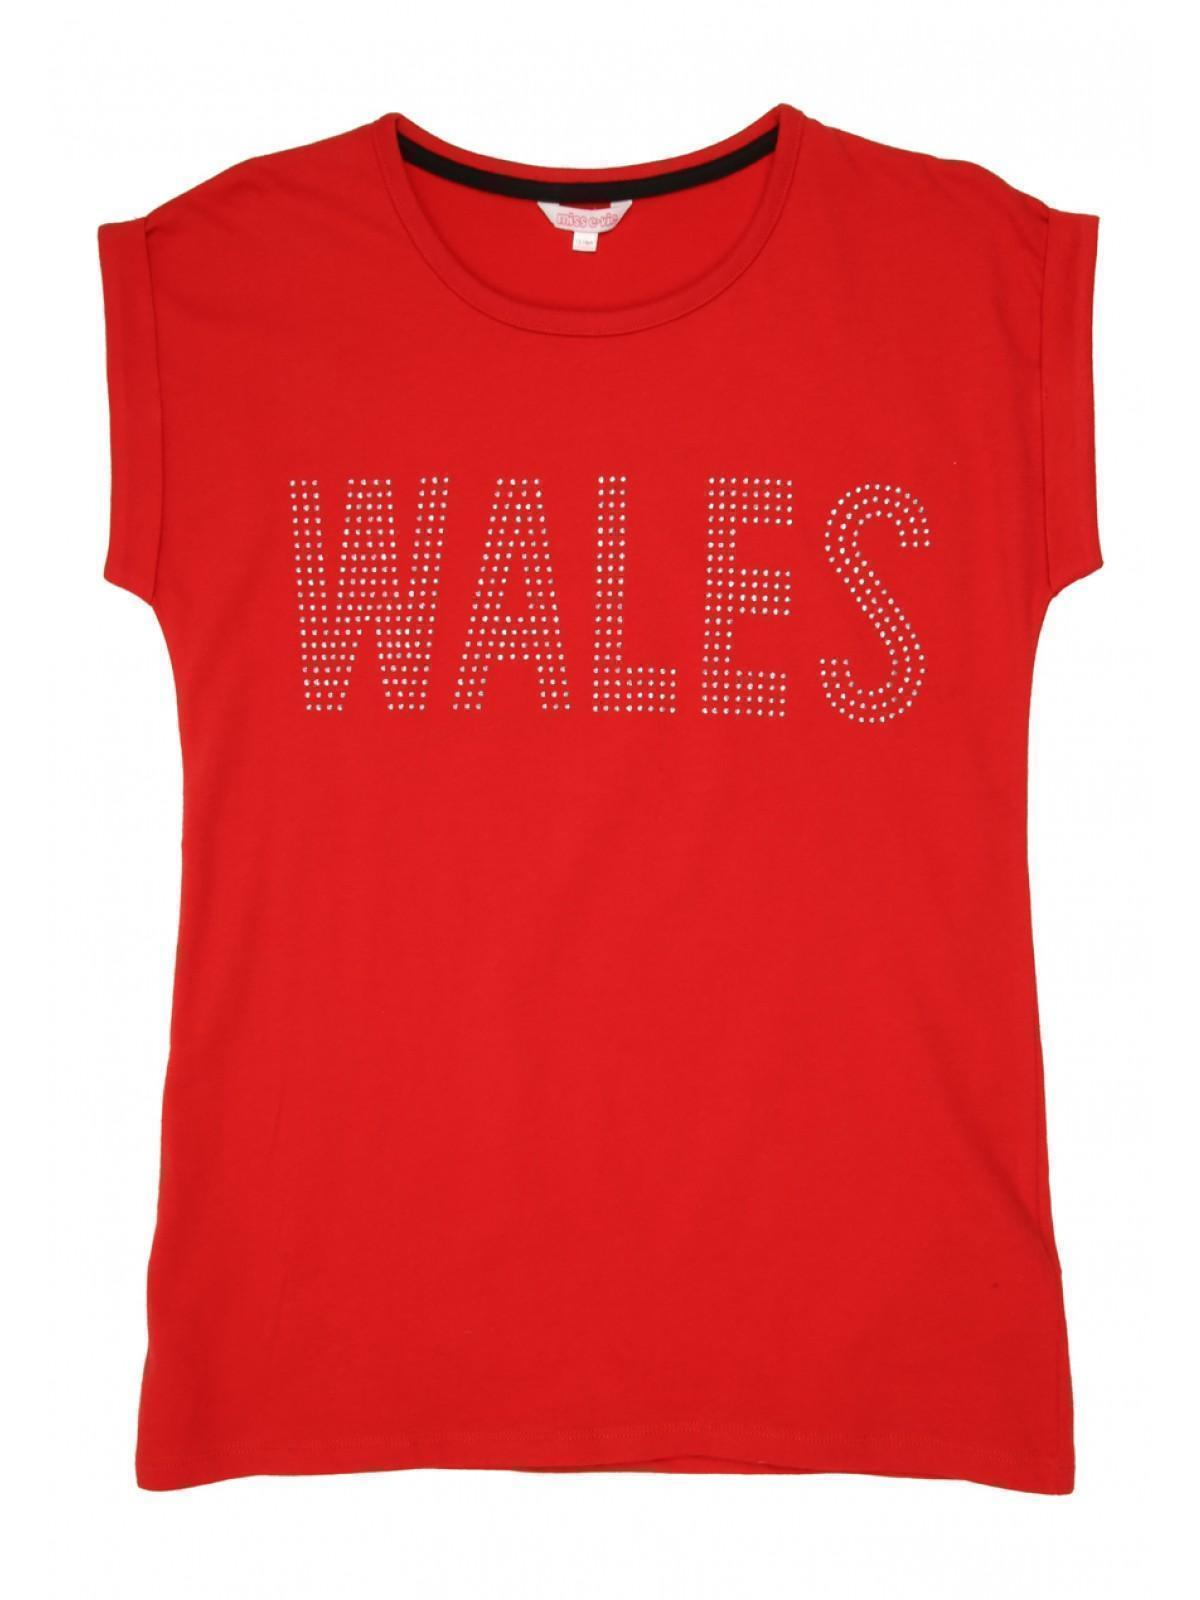 2a806cfe3 Home; Older Girls Red Wales T Shirt. Back. PreviousNext